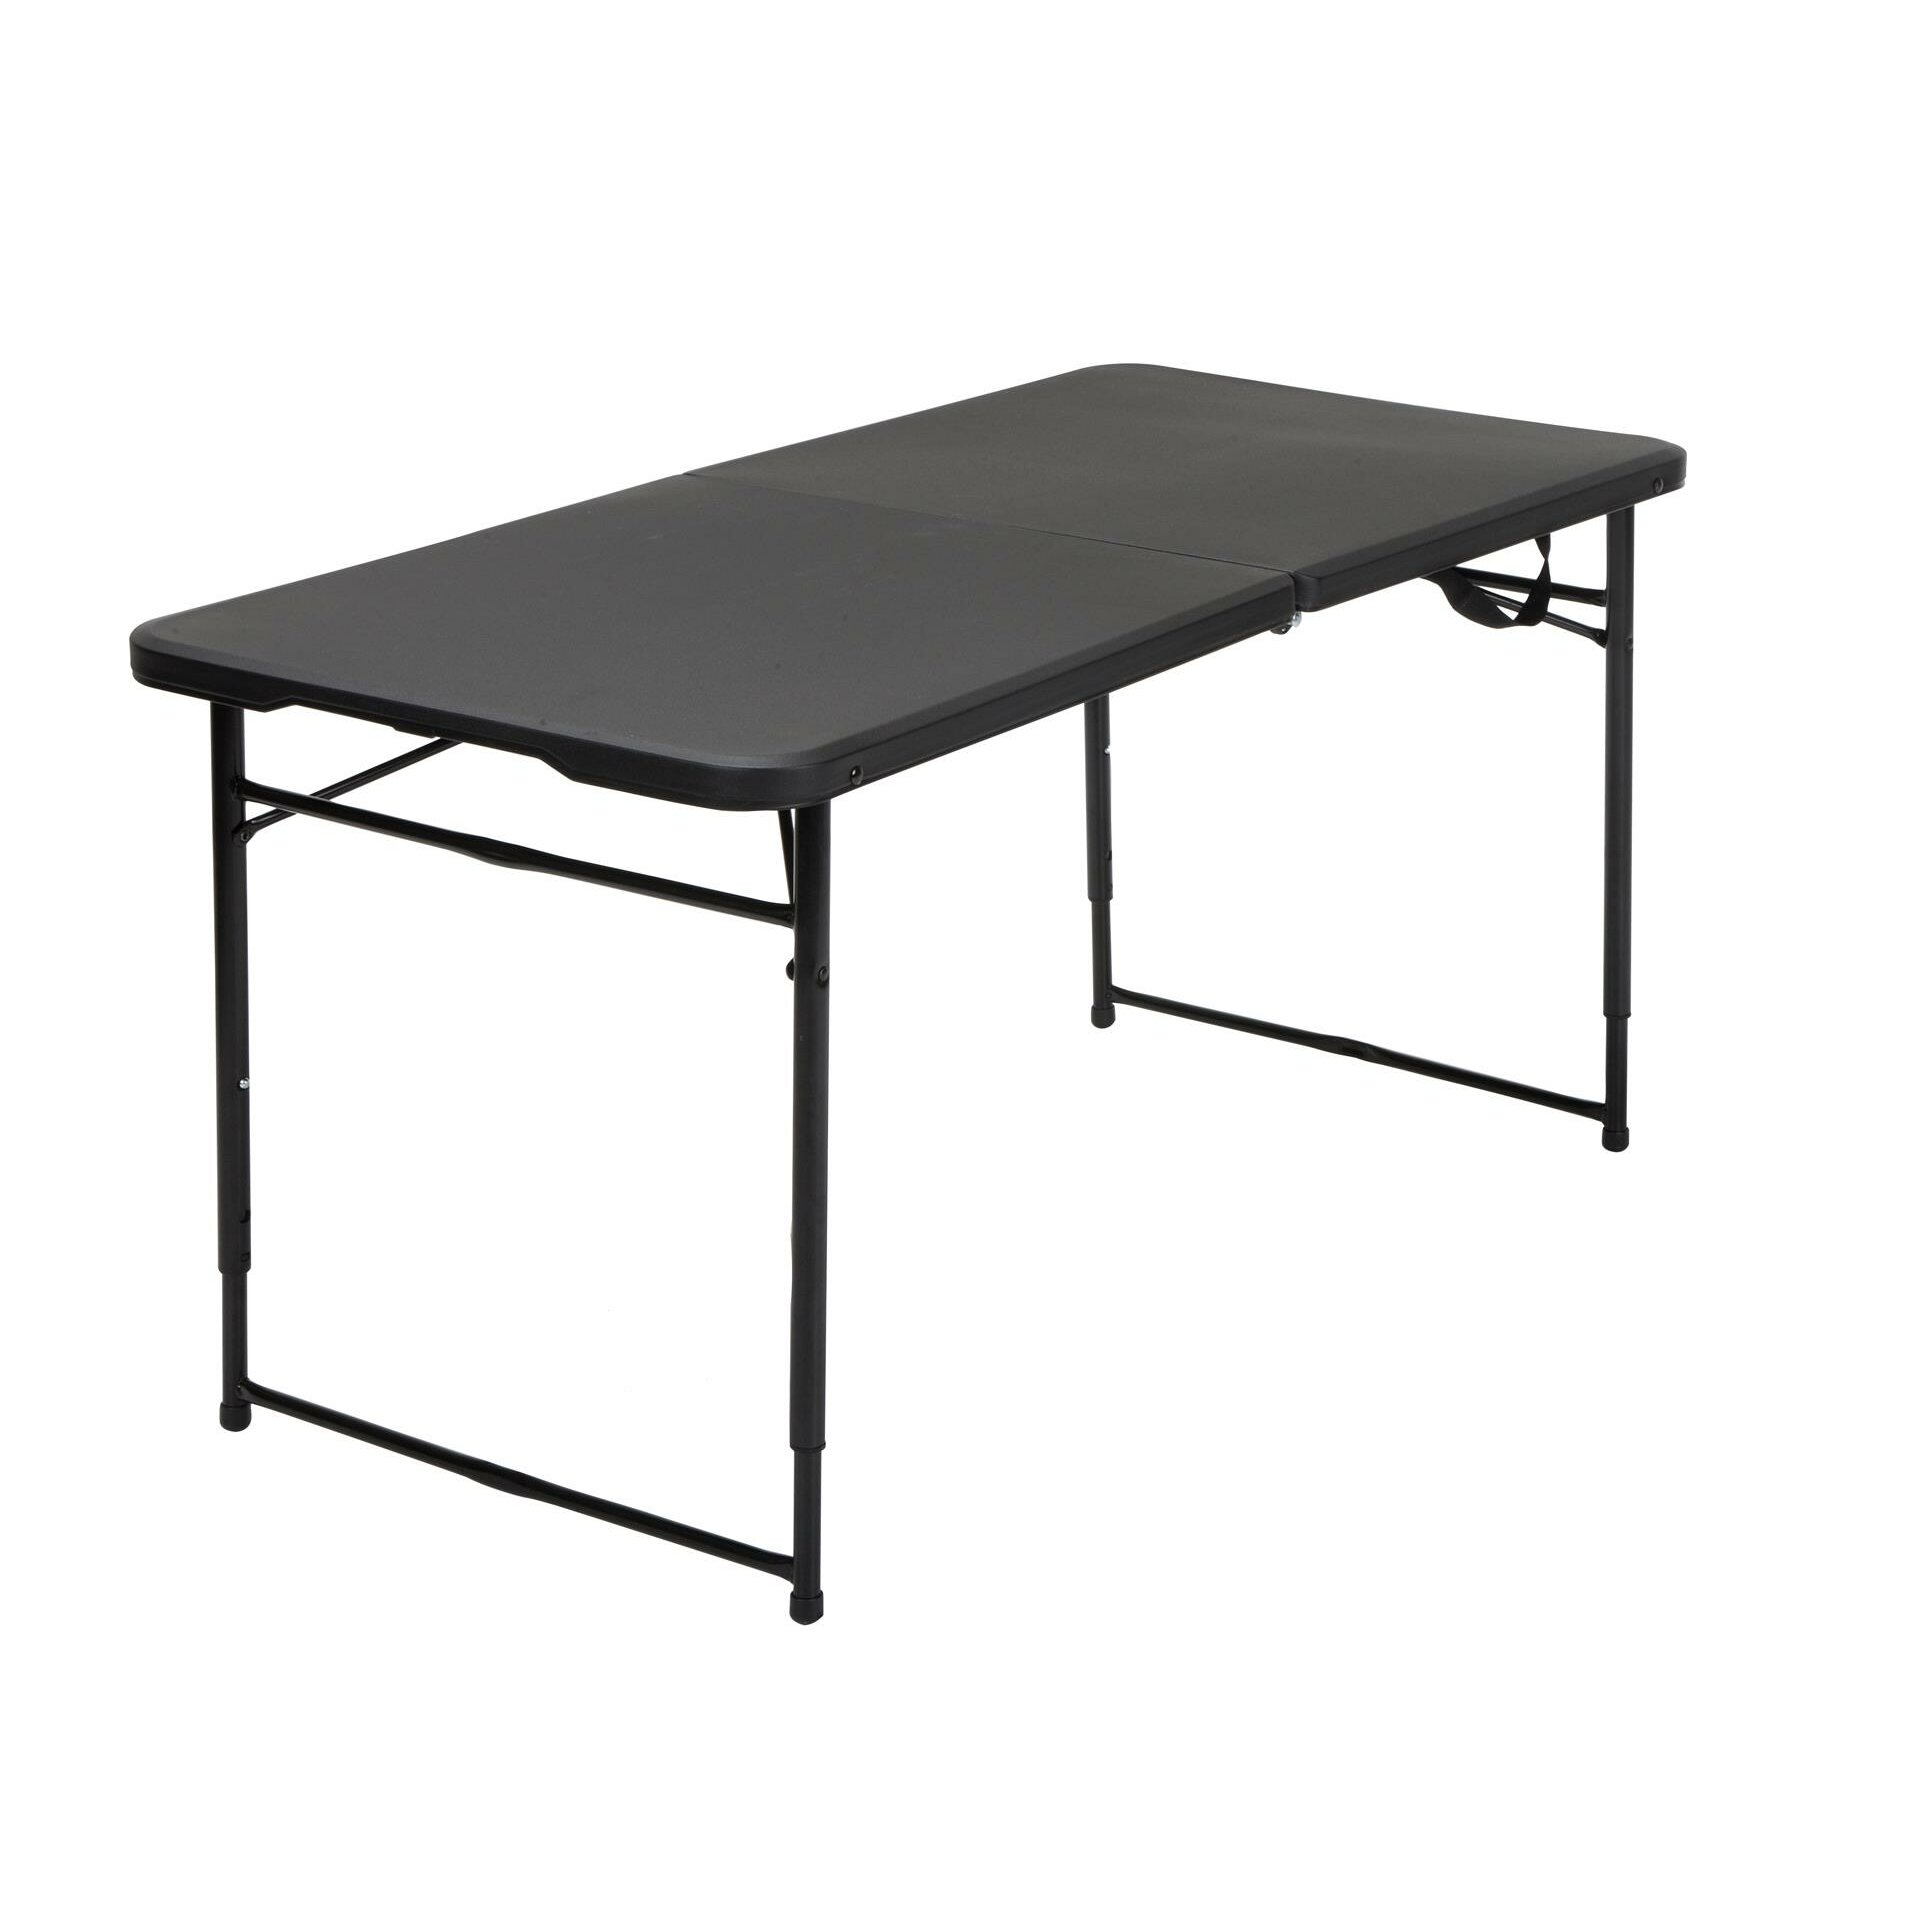 Patio Table Adjustable Height: Cosco Home And Office Indoor/Outdoor Adjustable Height